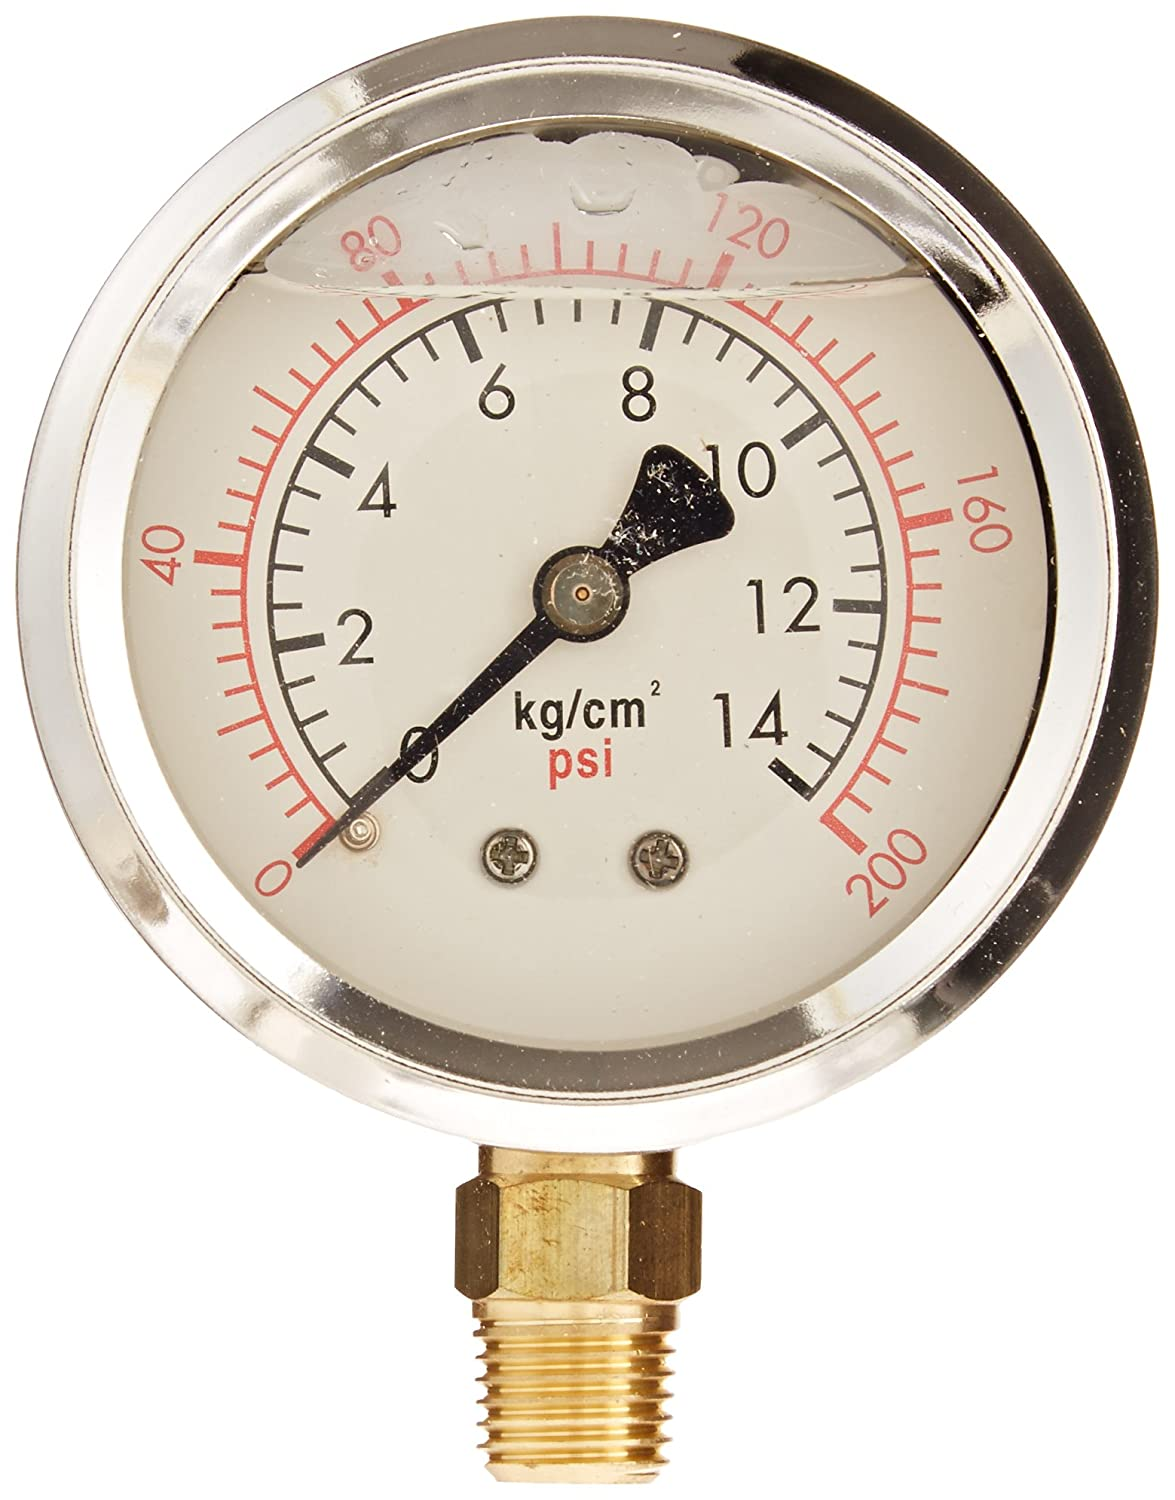 PIC Gauge PRO 201L 254G KG CM2 Glycerin Filled Industrial Bottom Mount Pressure Gauge with Stainless Steel Case Brass Internals Plastic Lens 2 1 2 Dial Size 1 4 Male NPT 0 200 psi kgcm2